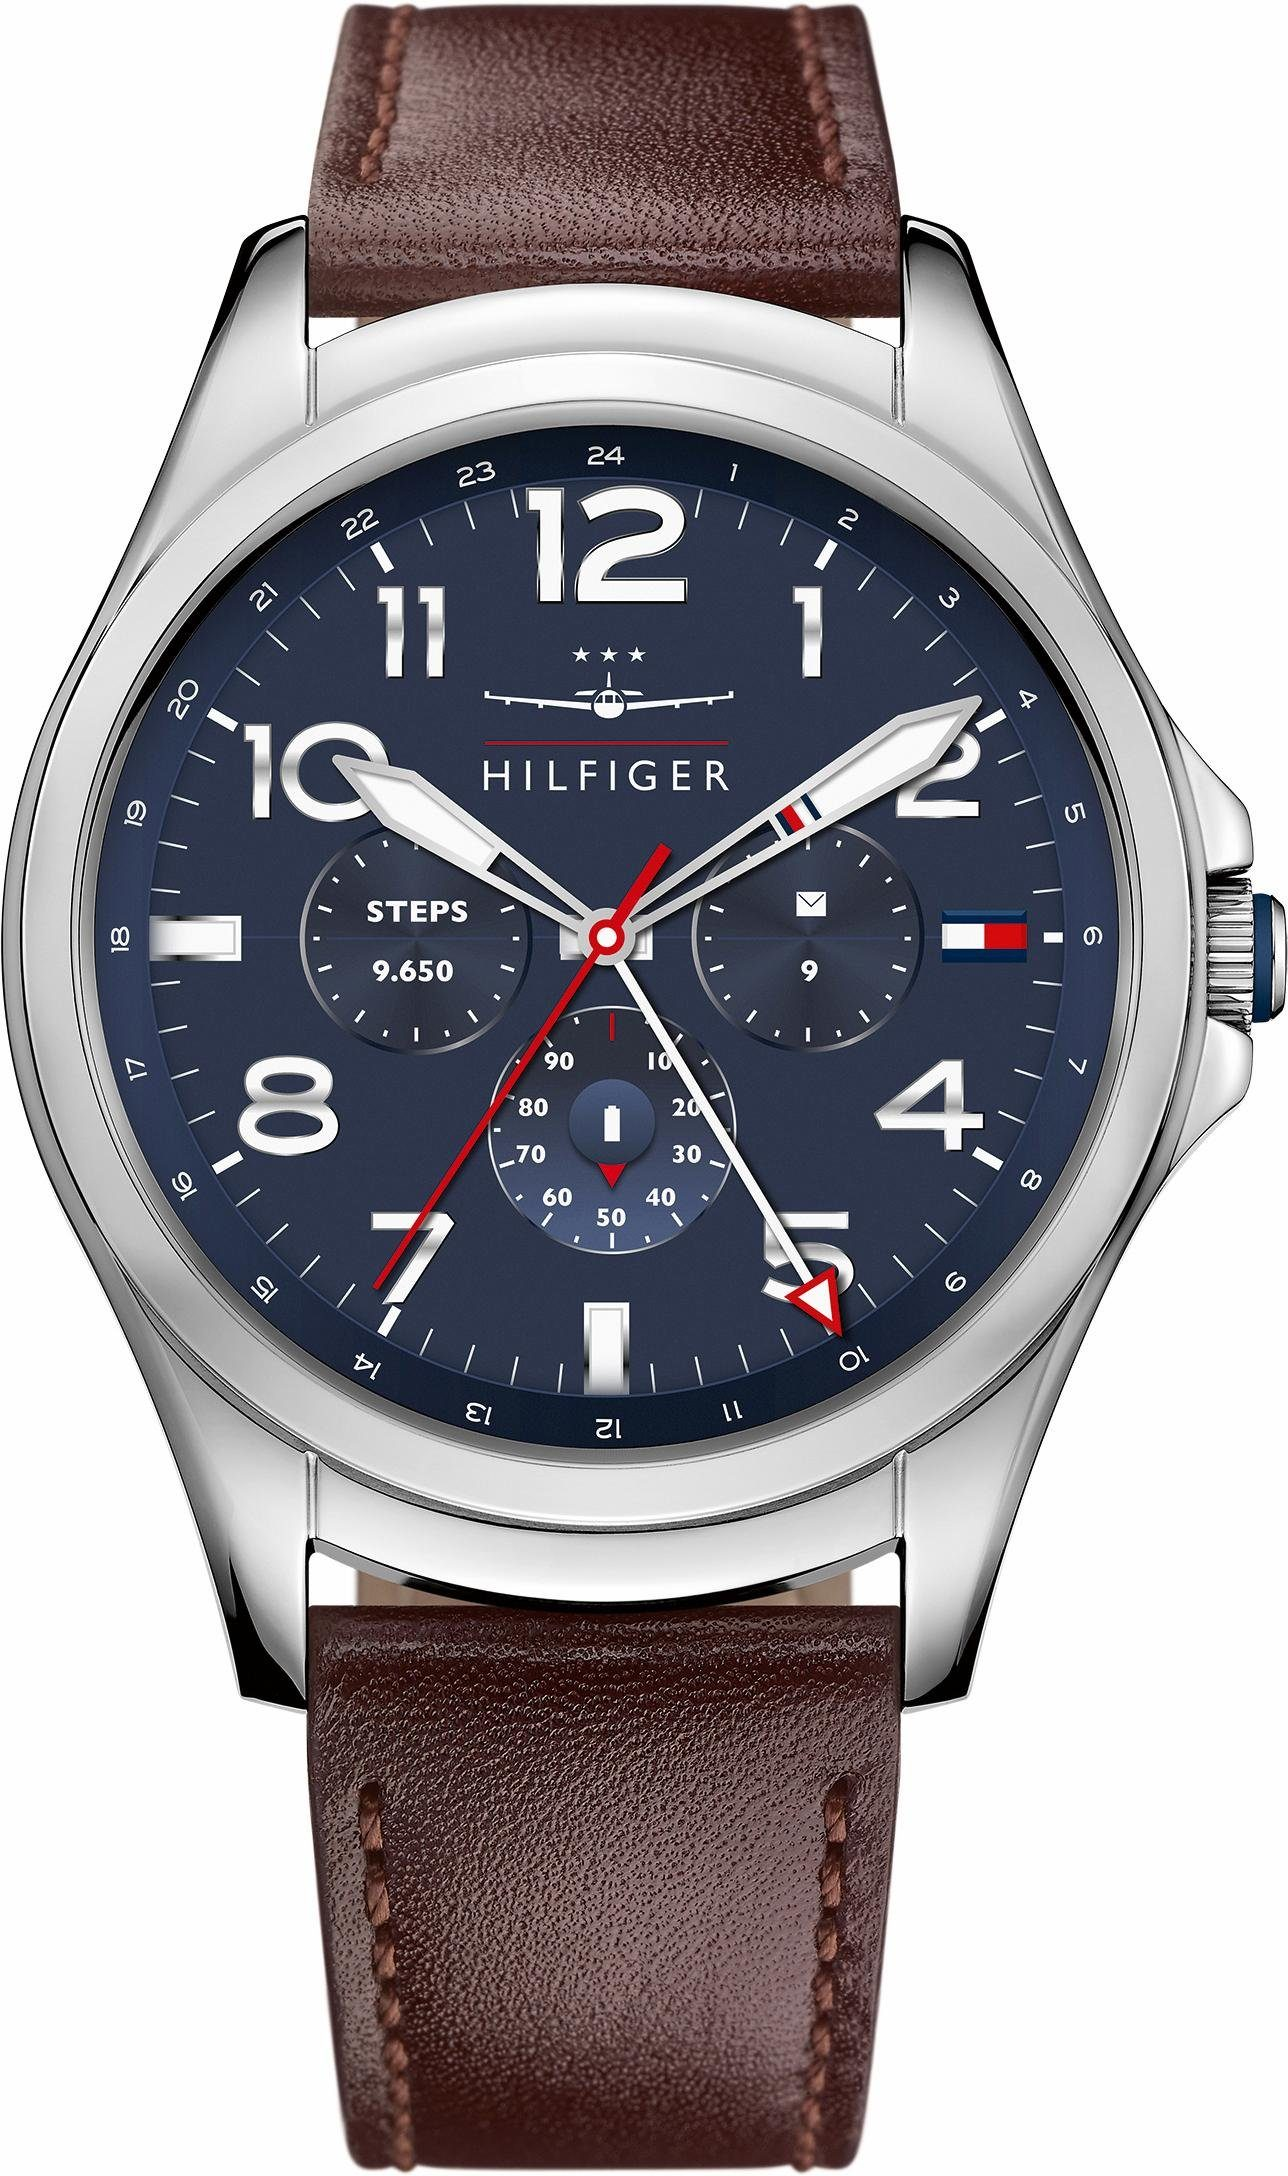 TOMMY HILFIGER TH 24/7 YOU, 1791406 Smartwatch (Android Wear)